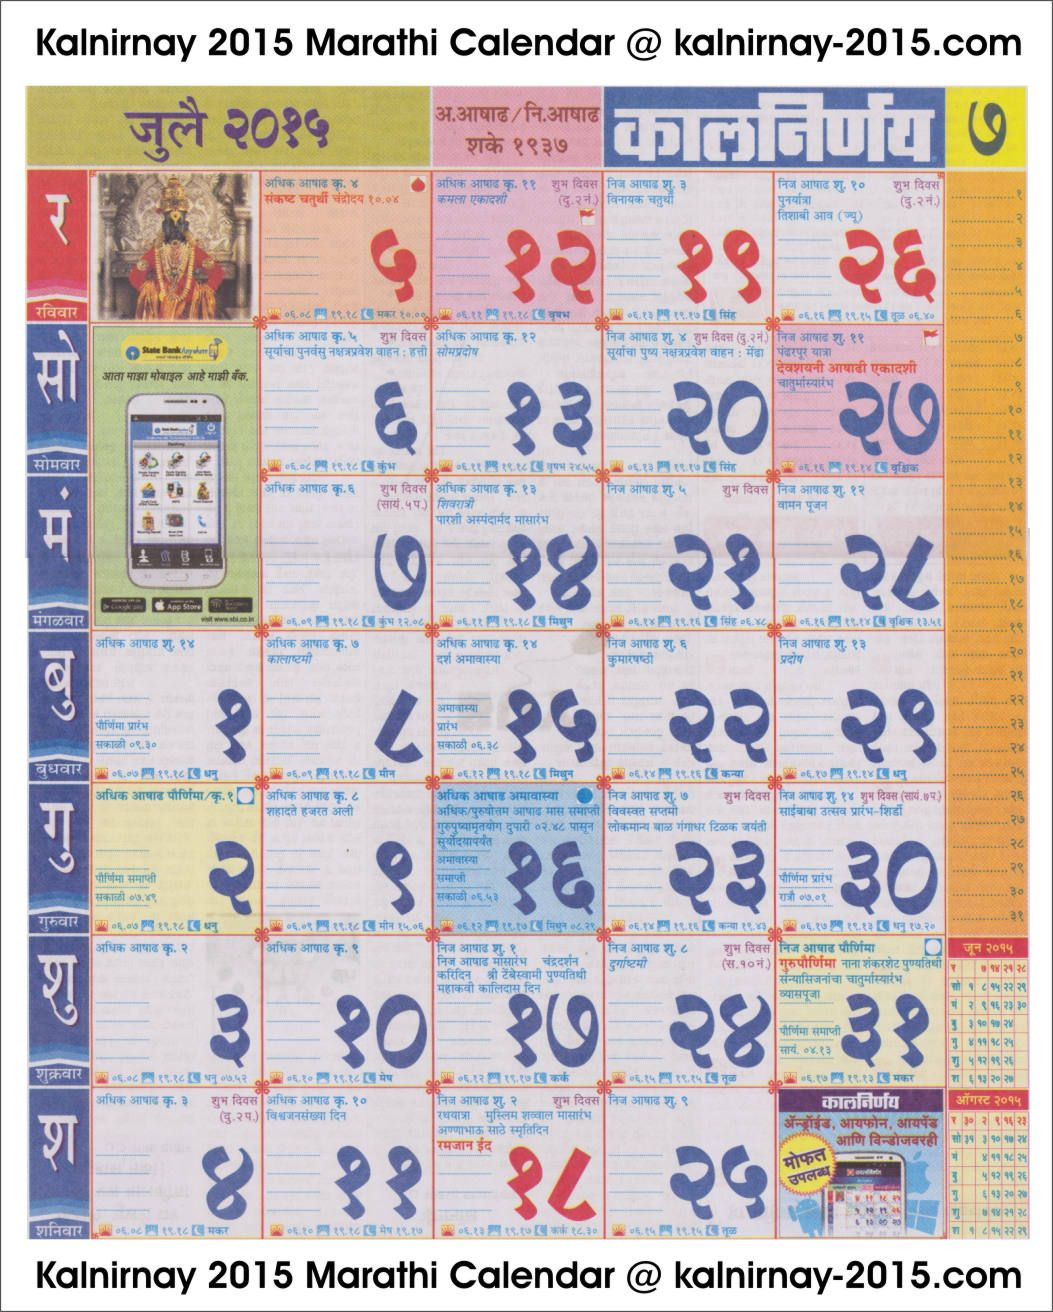 2015 Kalnirnay Calendar (pdf) In Hindi Language